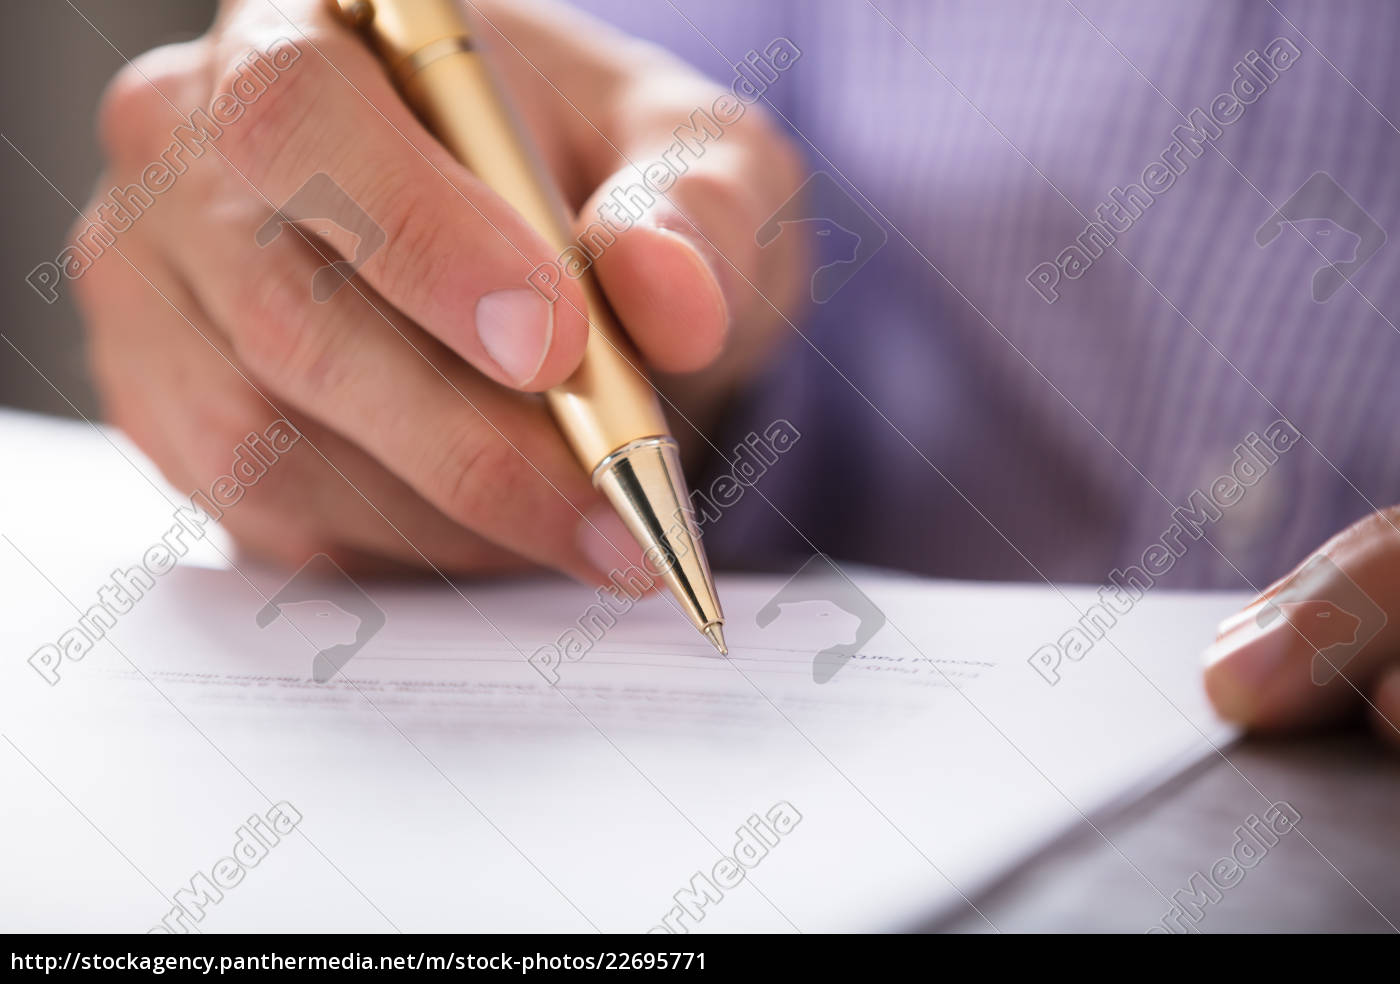 businessperson's, hand, signing, document, with, pen - 22695771